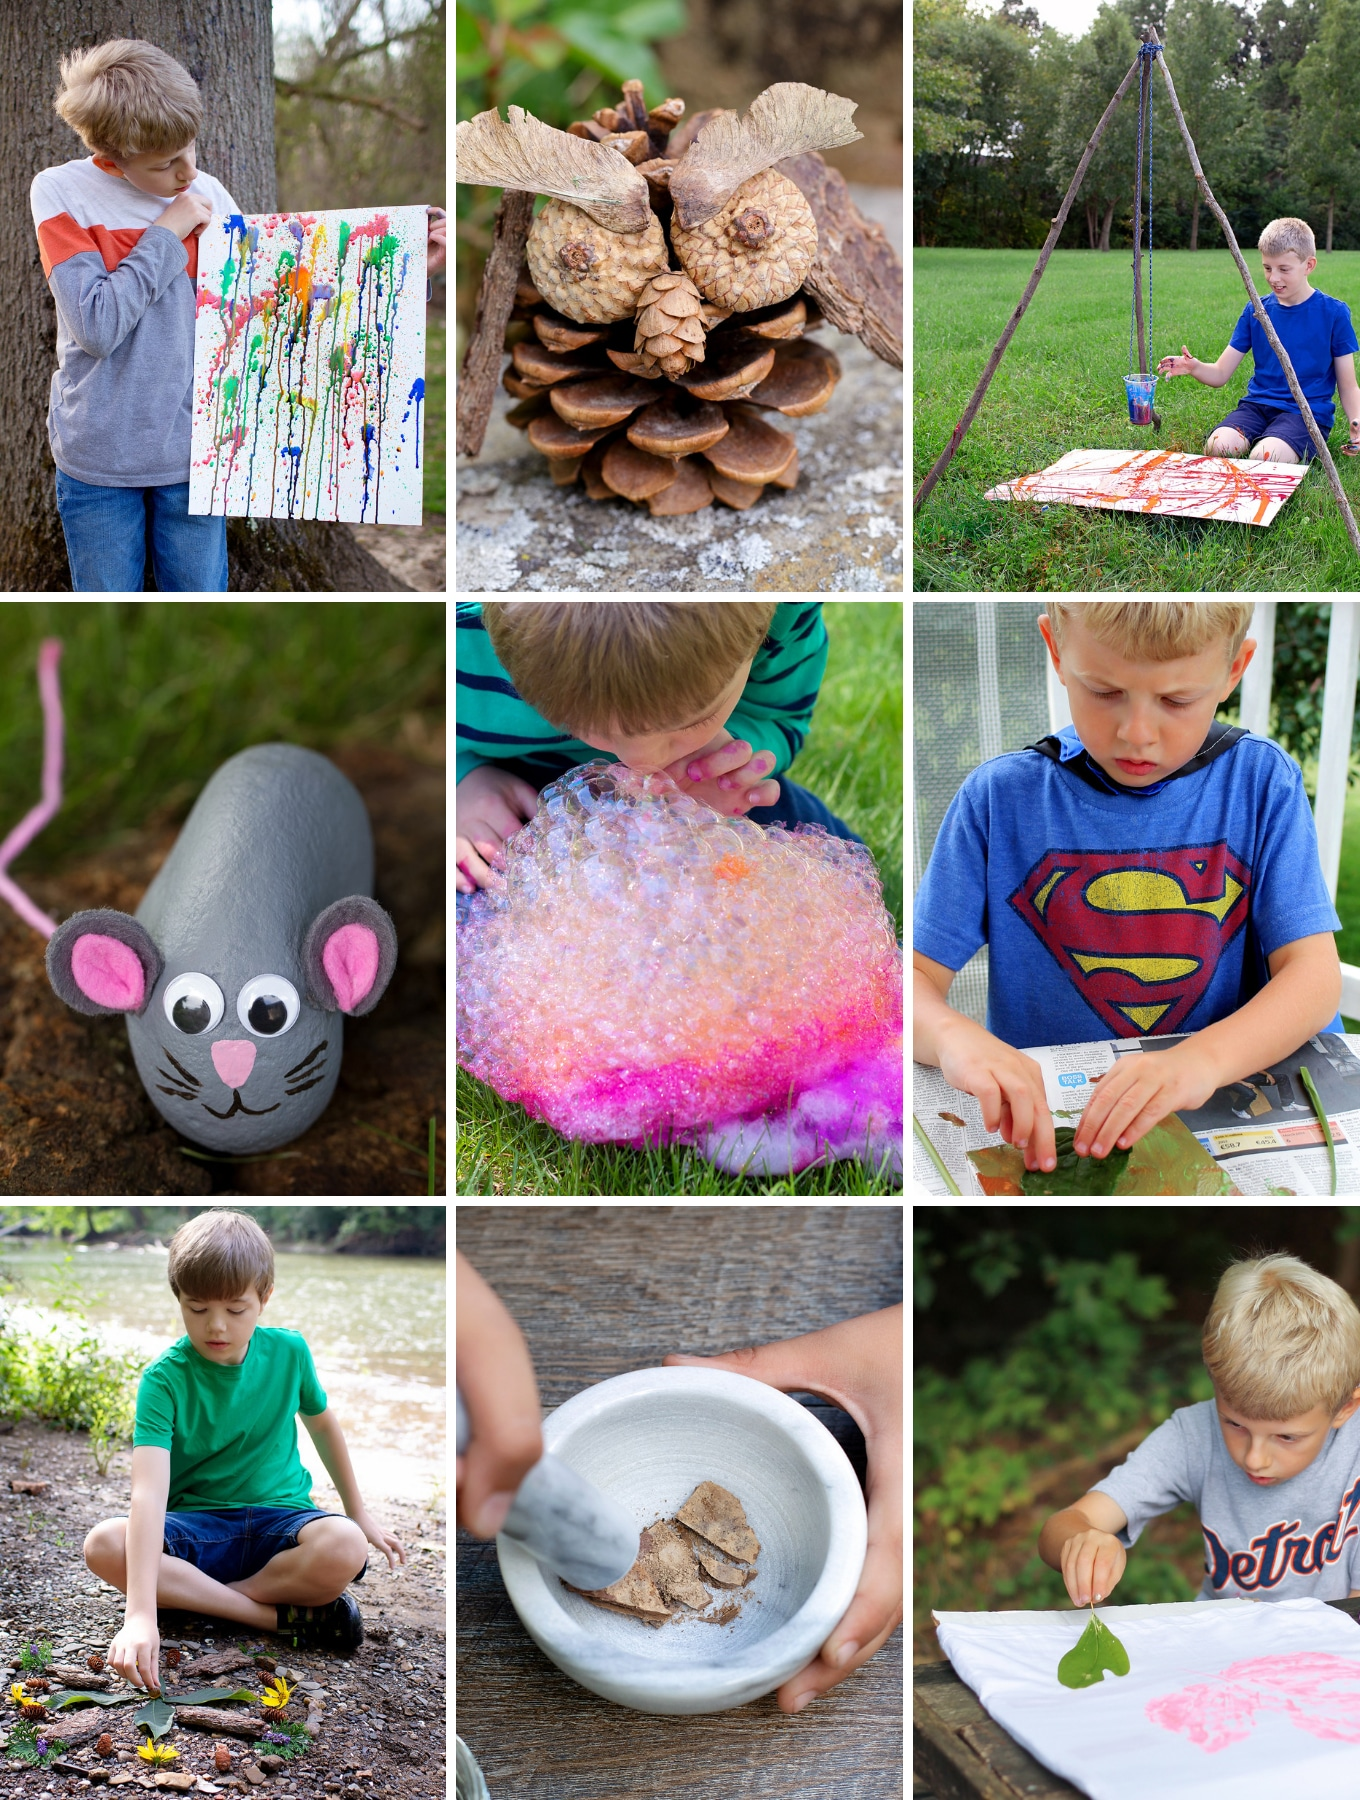 Fun Outdoor Arts And Crafts Ideas For Kids Fireflies And Mud Pies